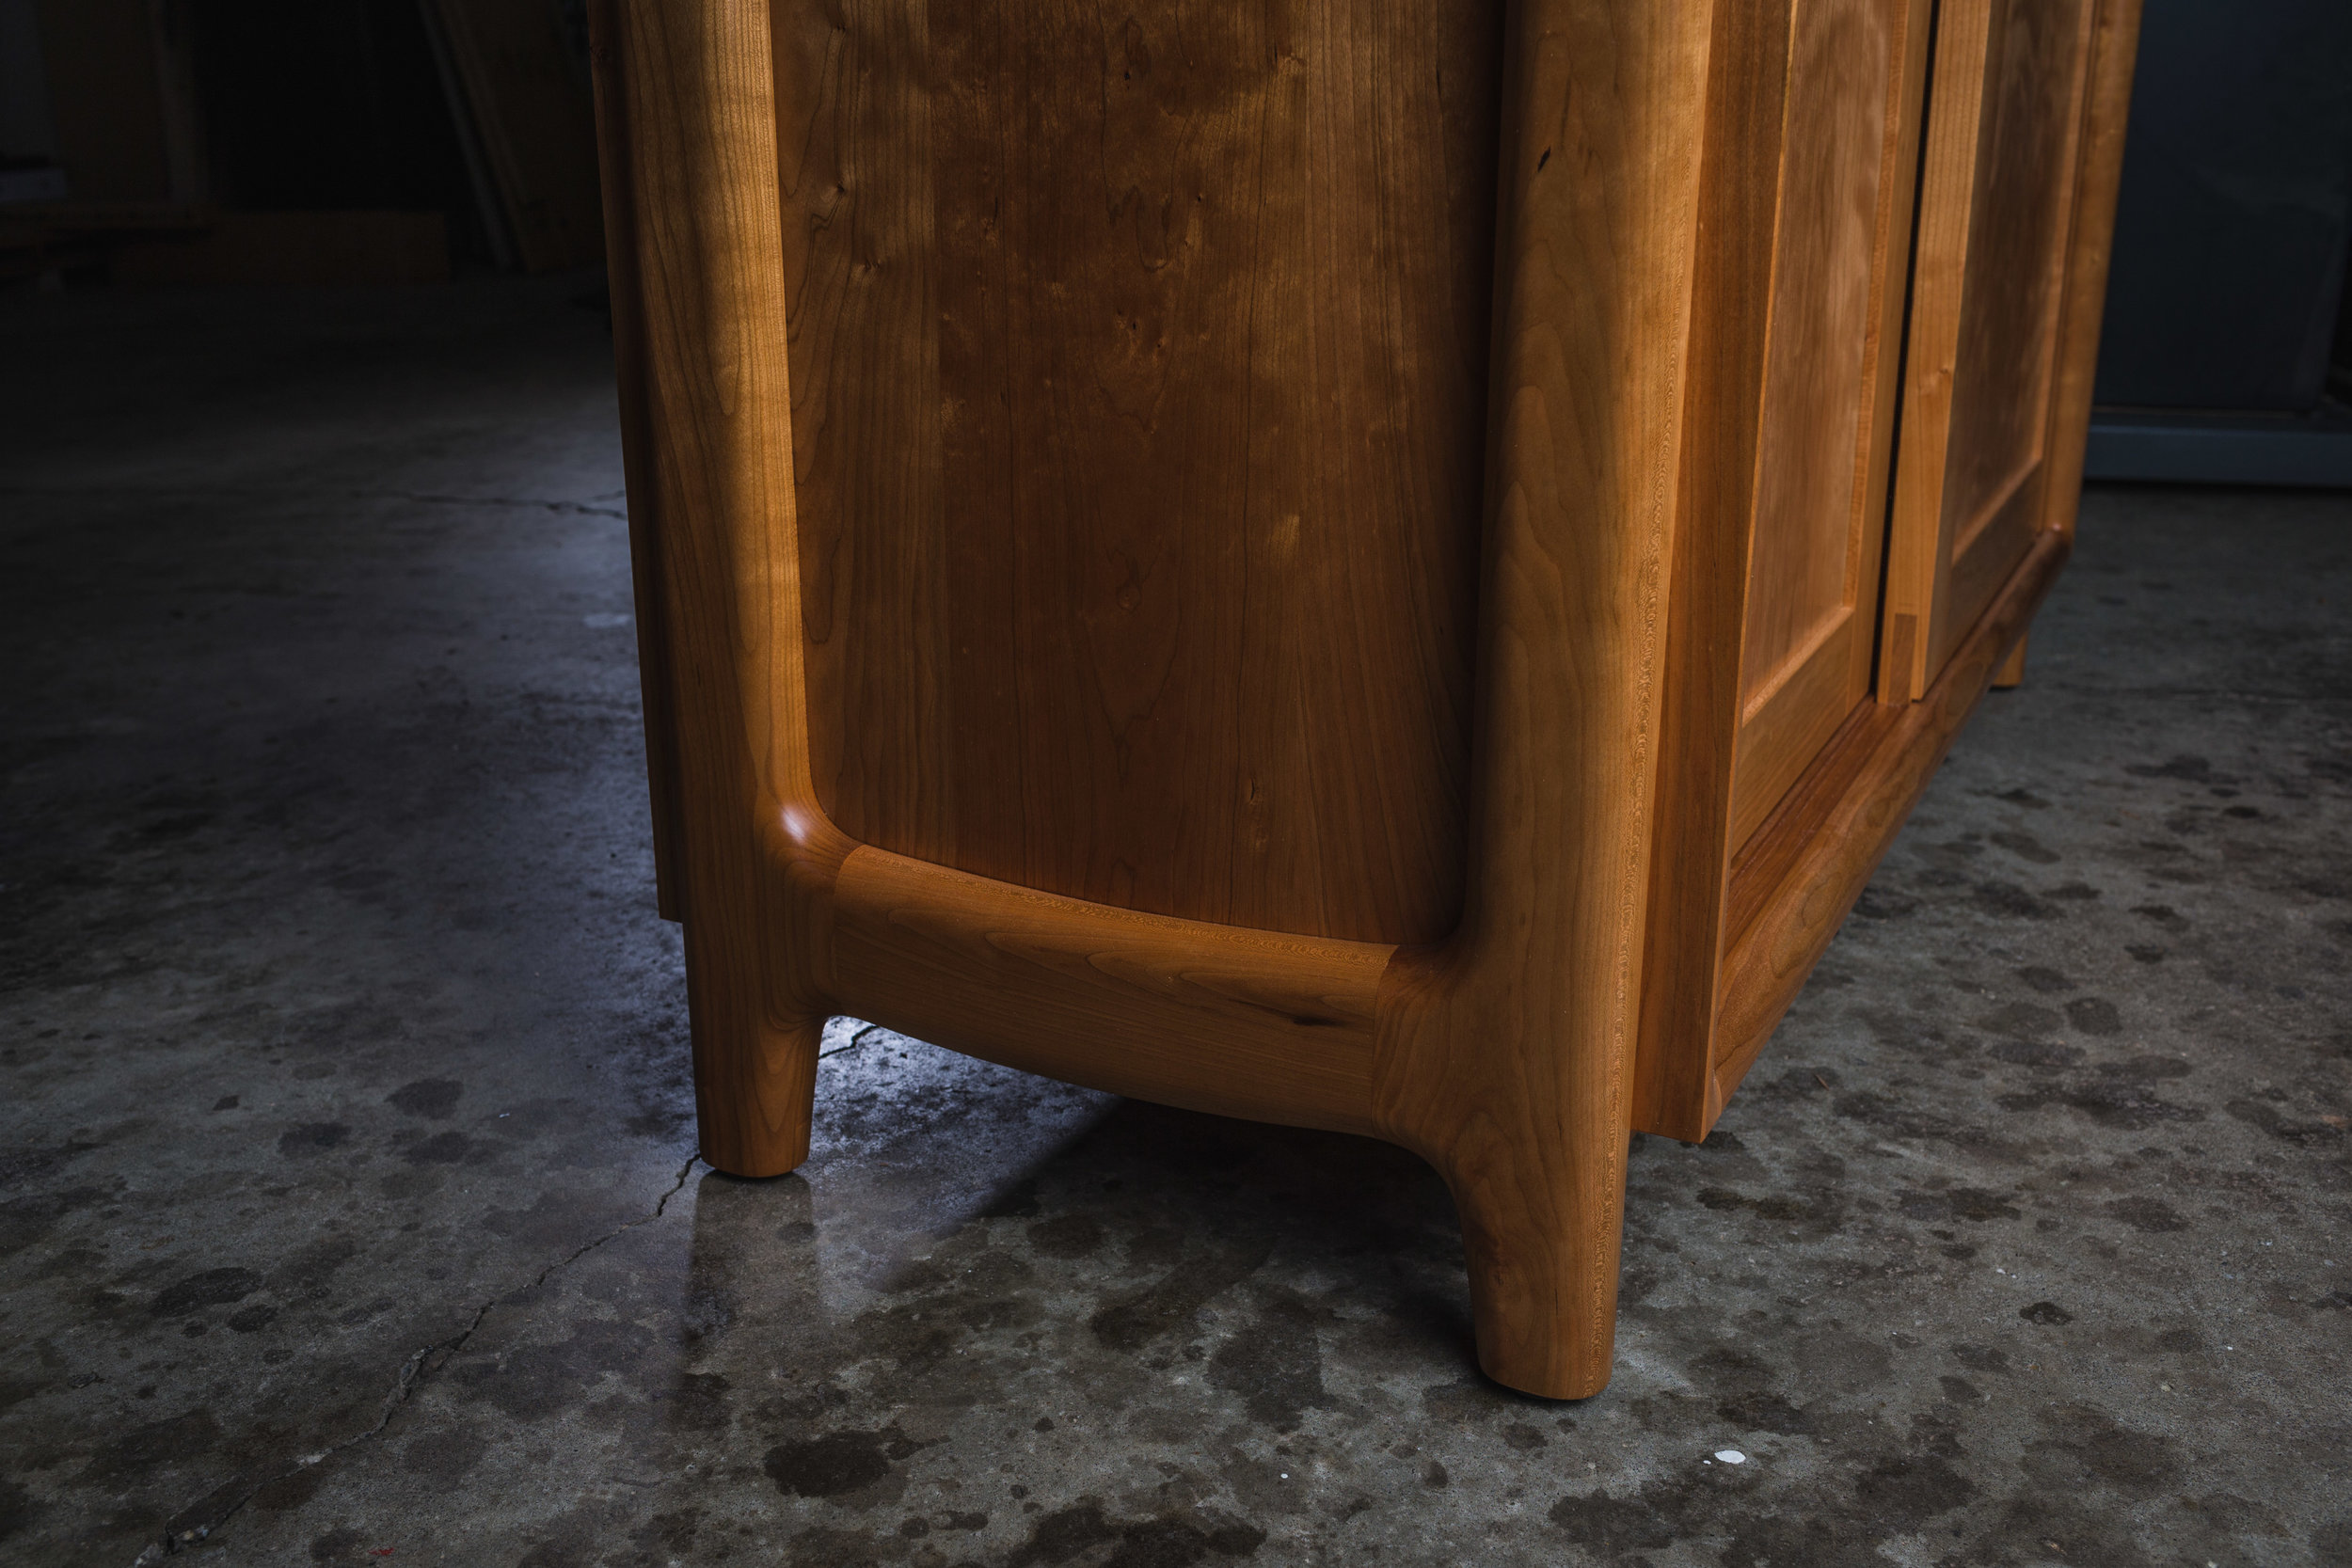 Cabinet detail: Case enclosed within leg design